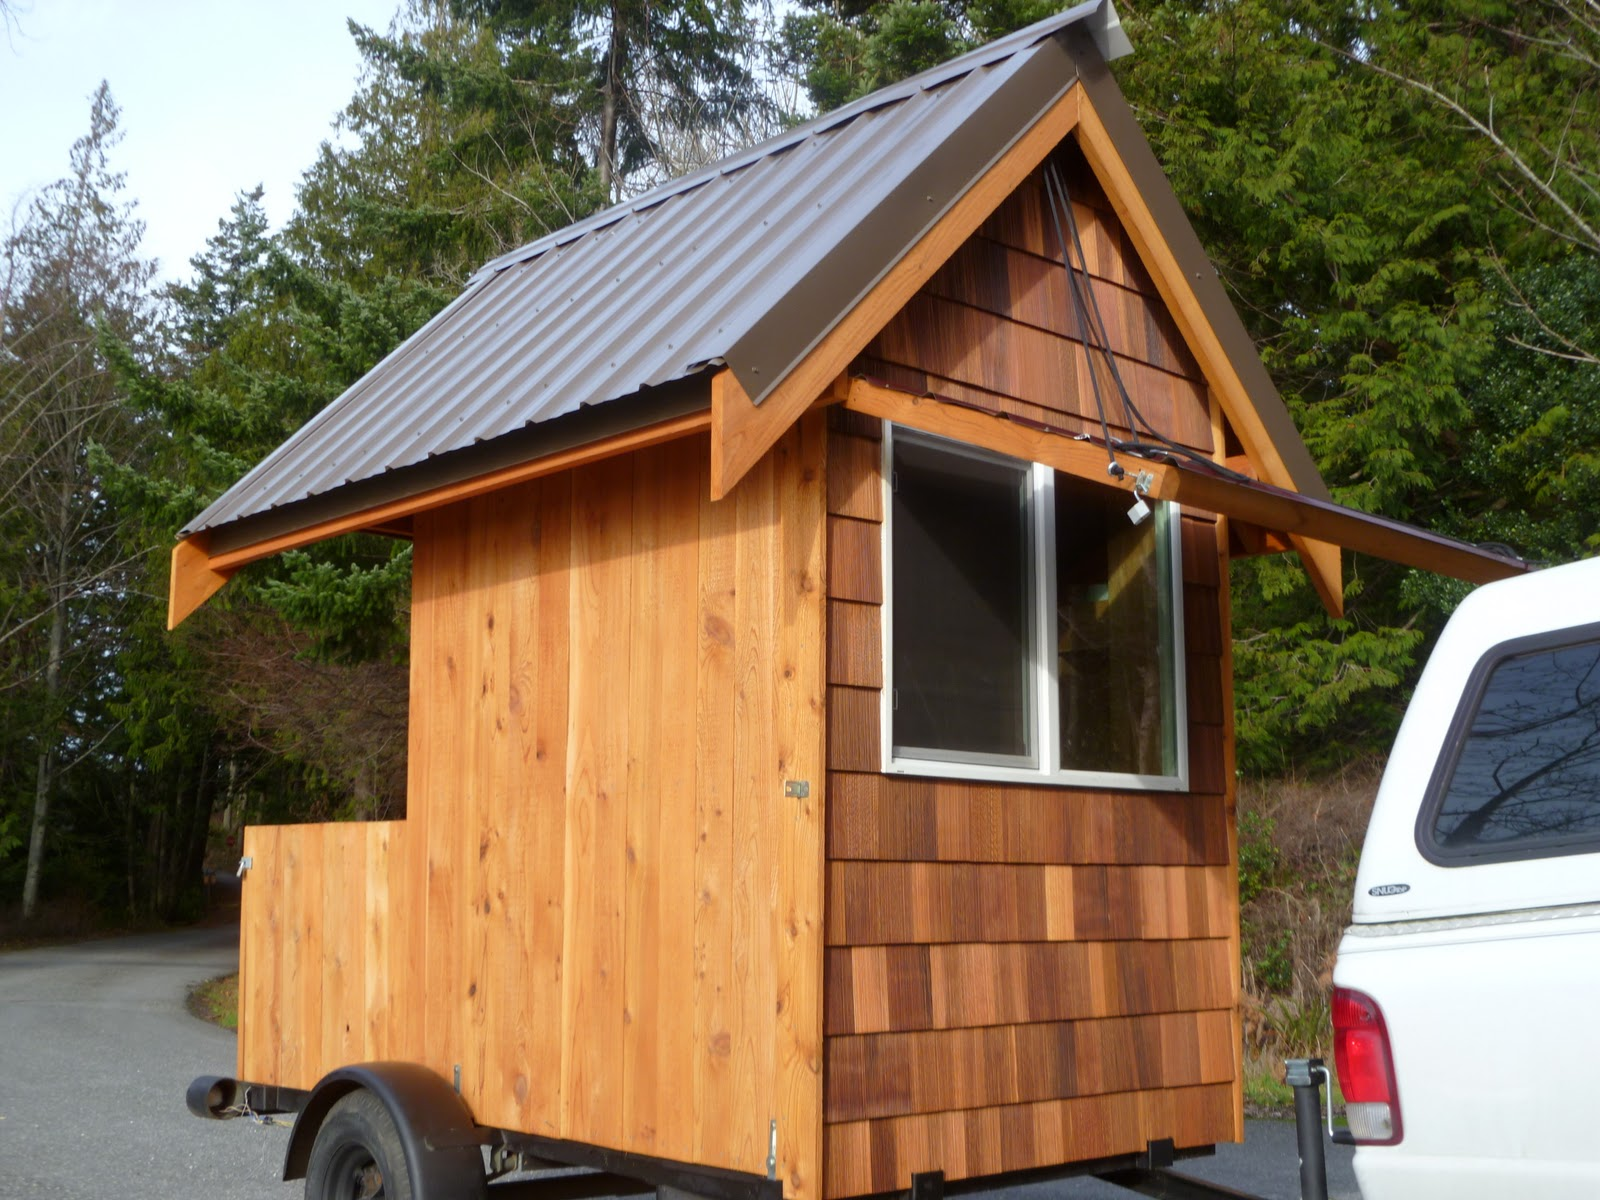 Eli curtis 39 tiny cabin on wheels a micro for Tiny cabin designs